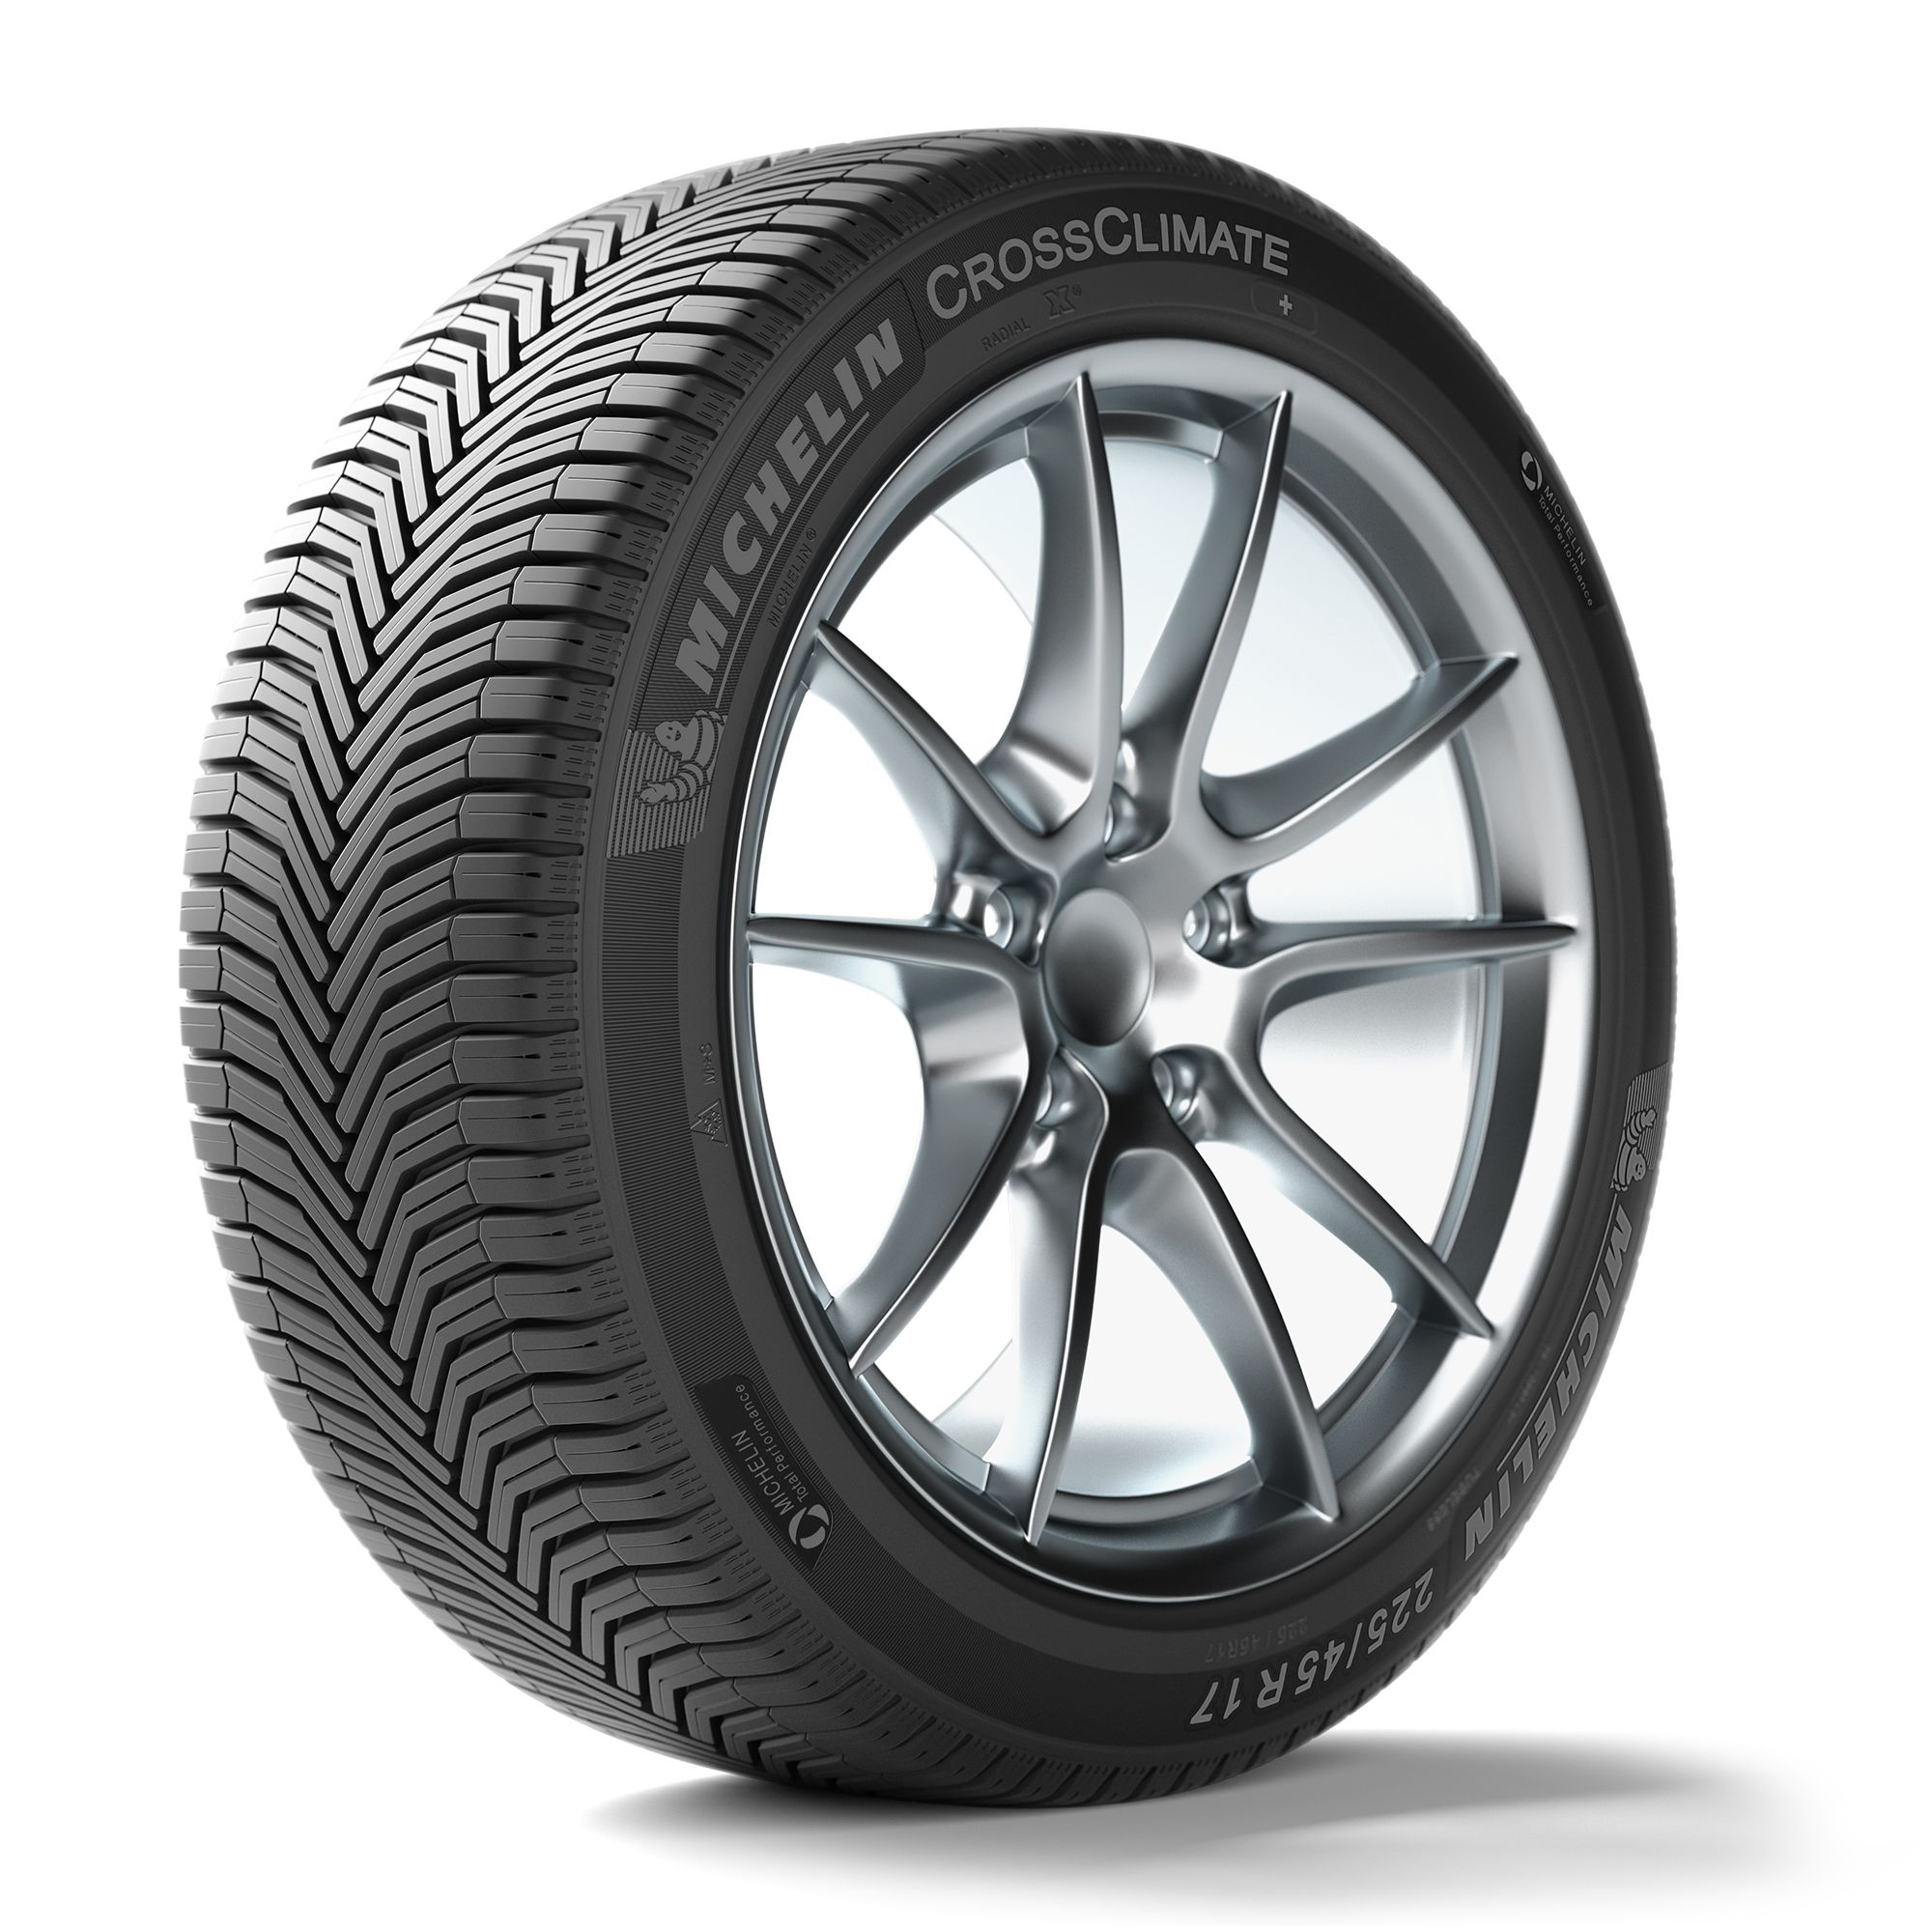 MICHELIN CROSSCLIMATE+ 235/45R17 97Y